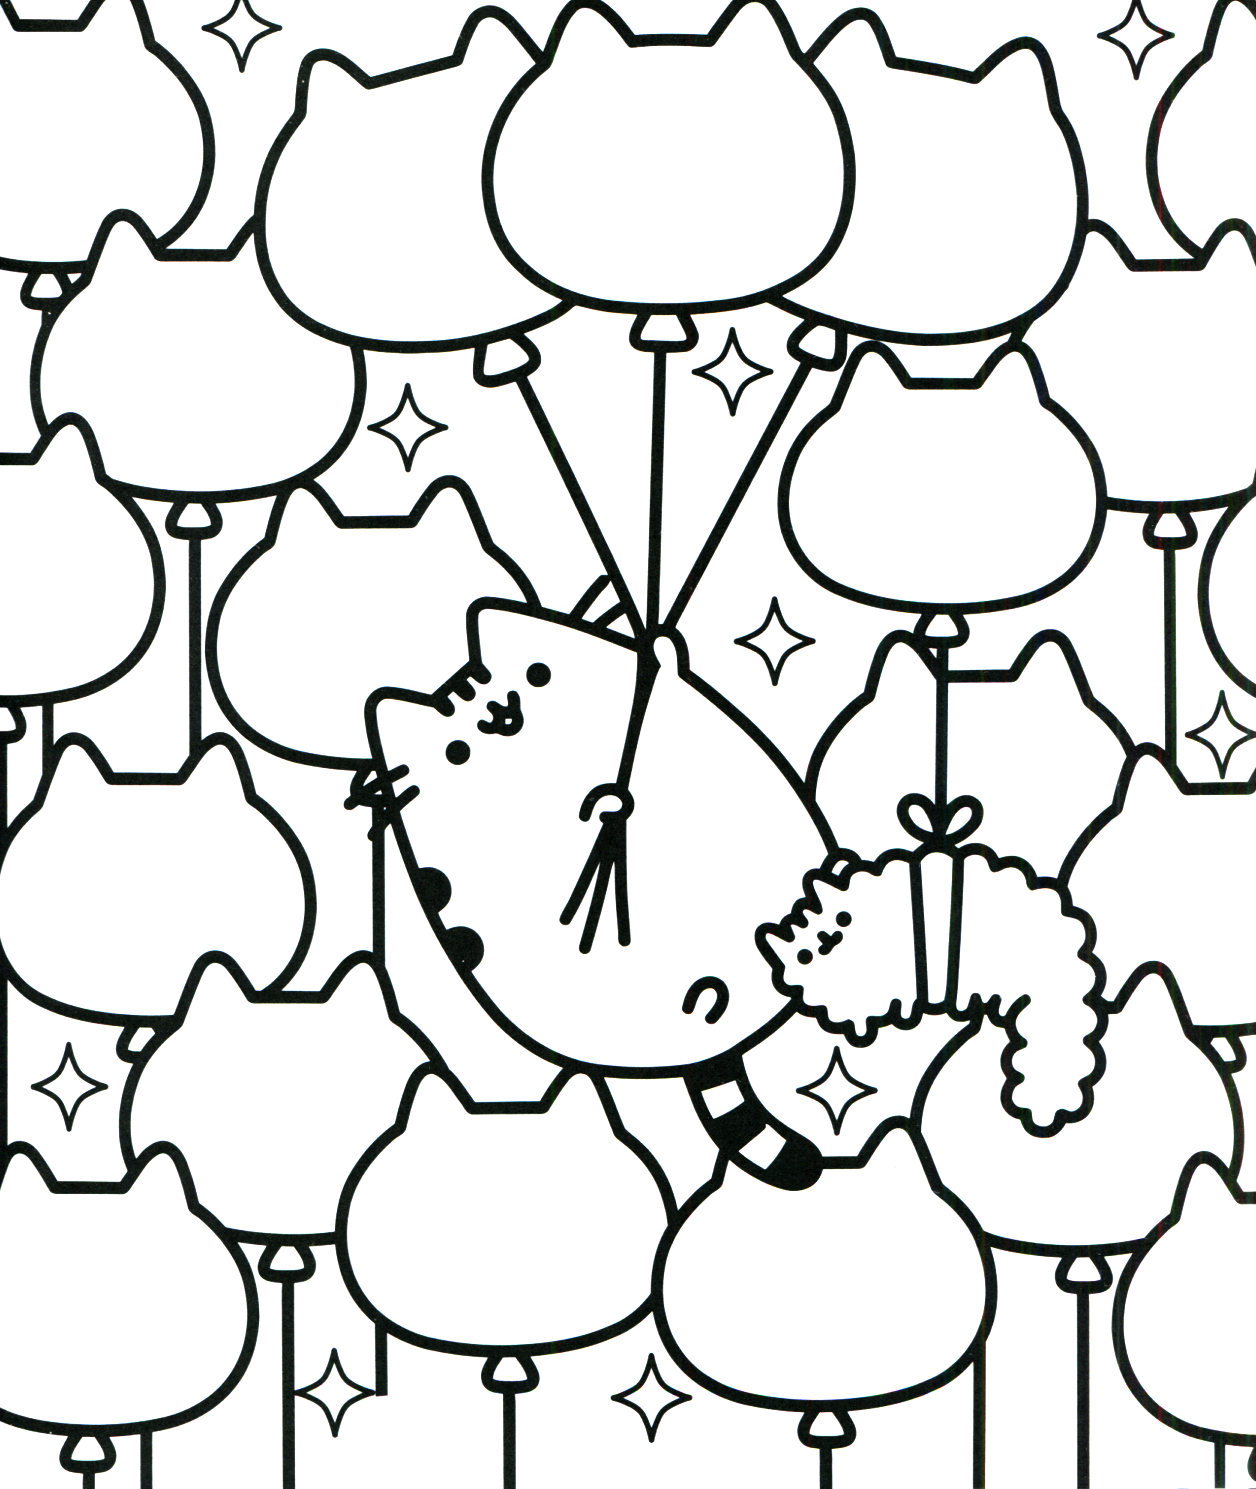 Pusheen coloring pages best coloring pages for kids for Printable cat coloring pages